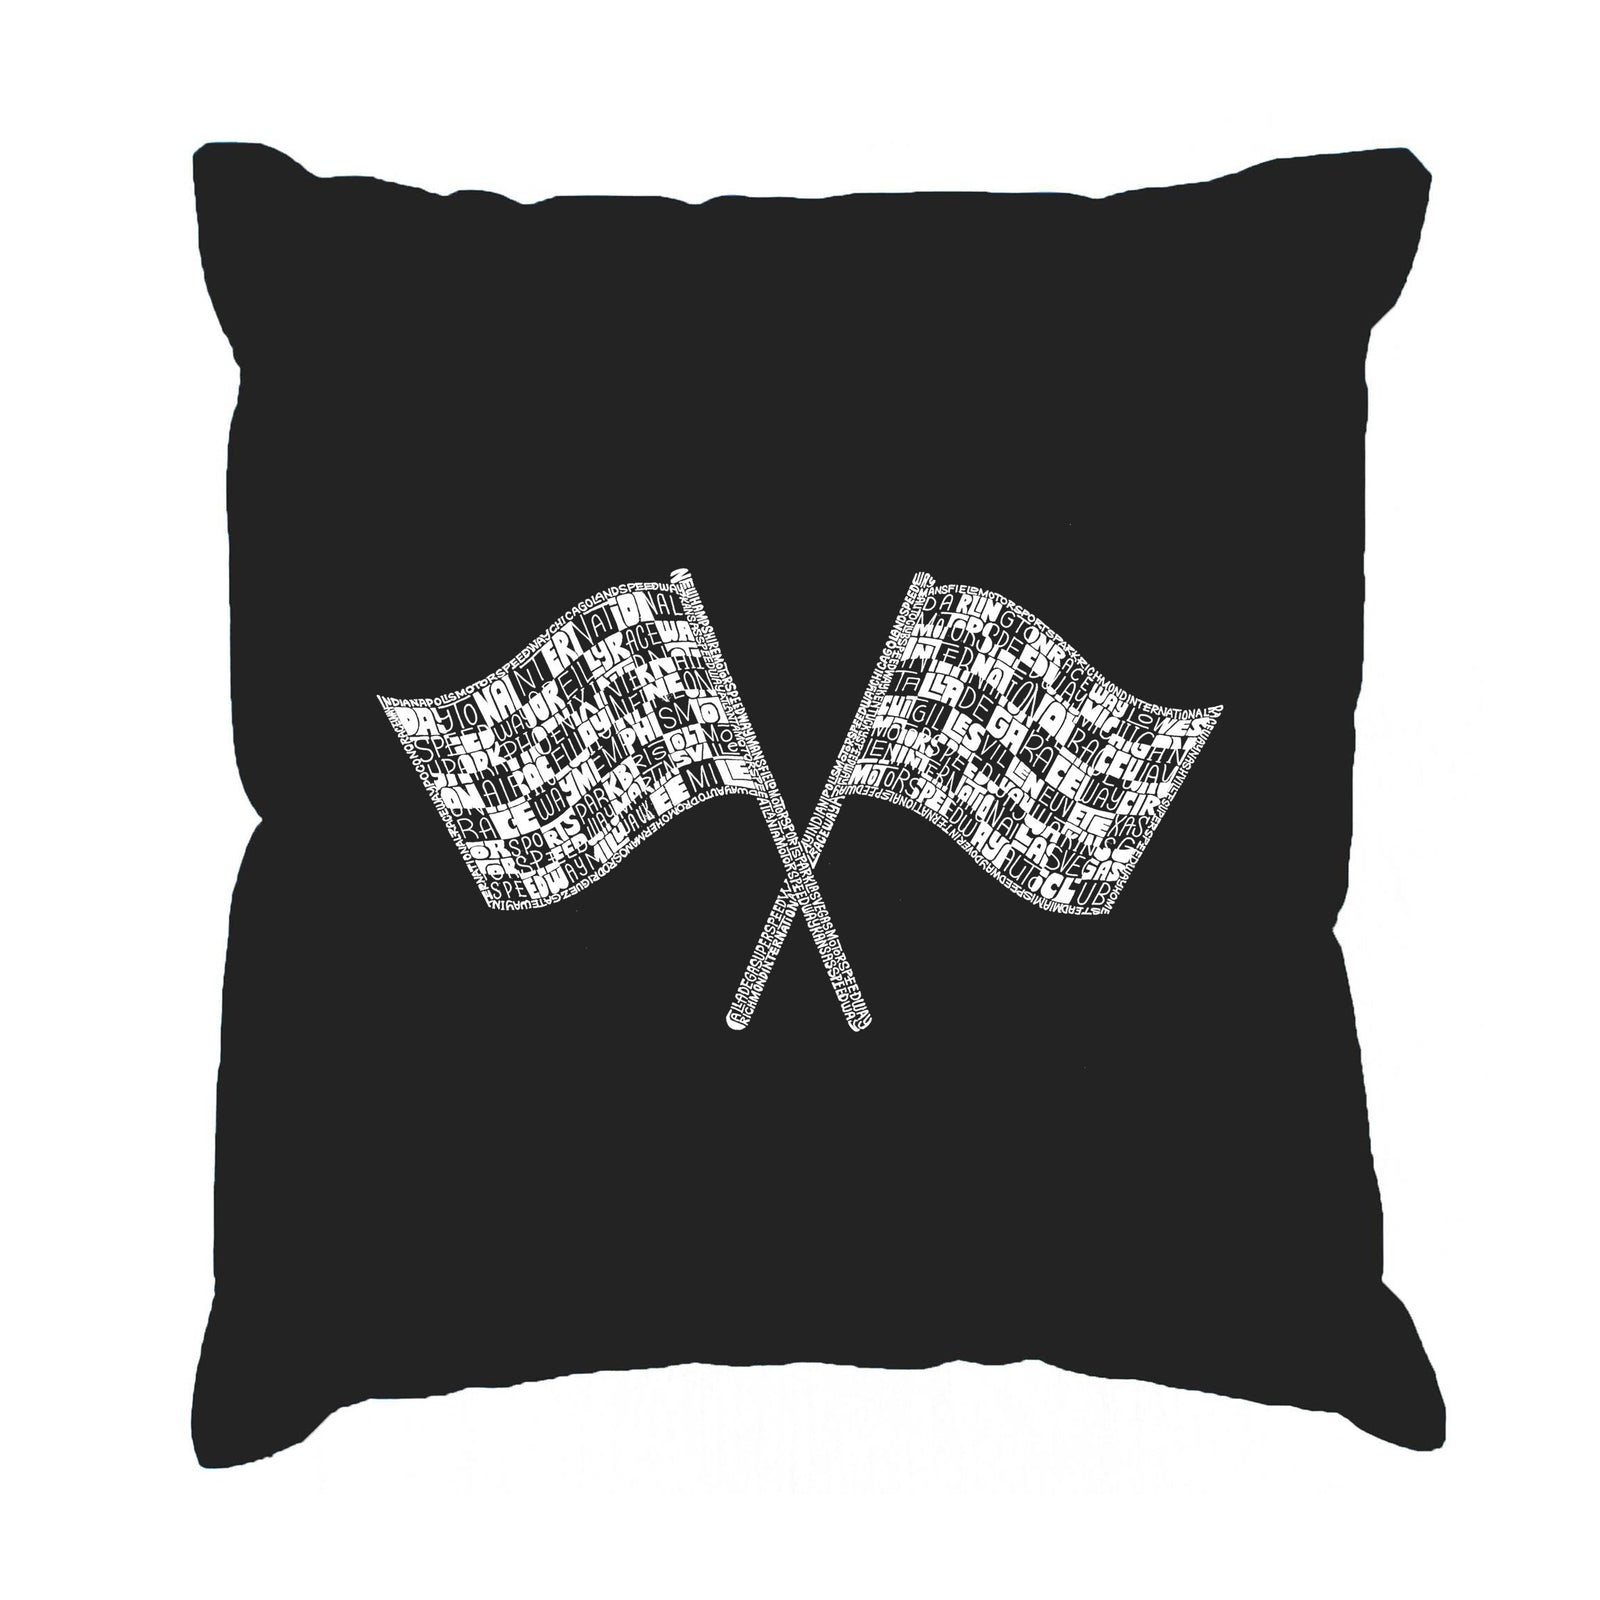 Throw Pillow Cover - NASCAR NATIONAL SERIES RACE TRACKS